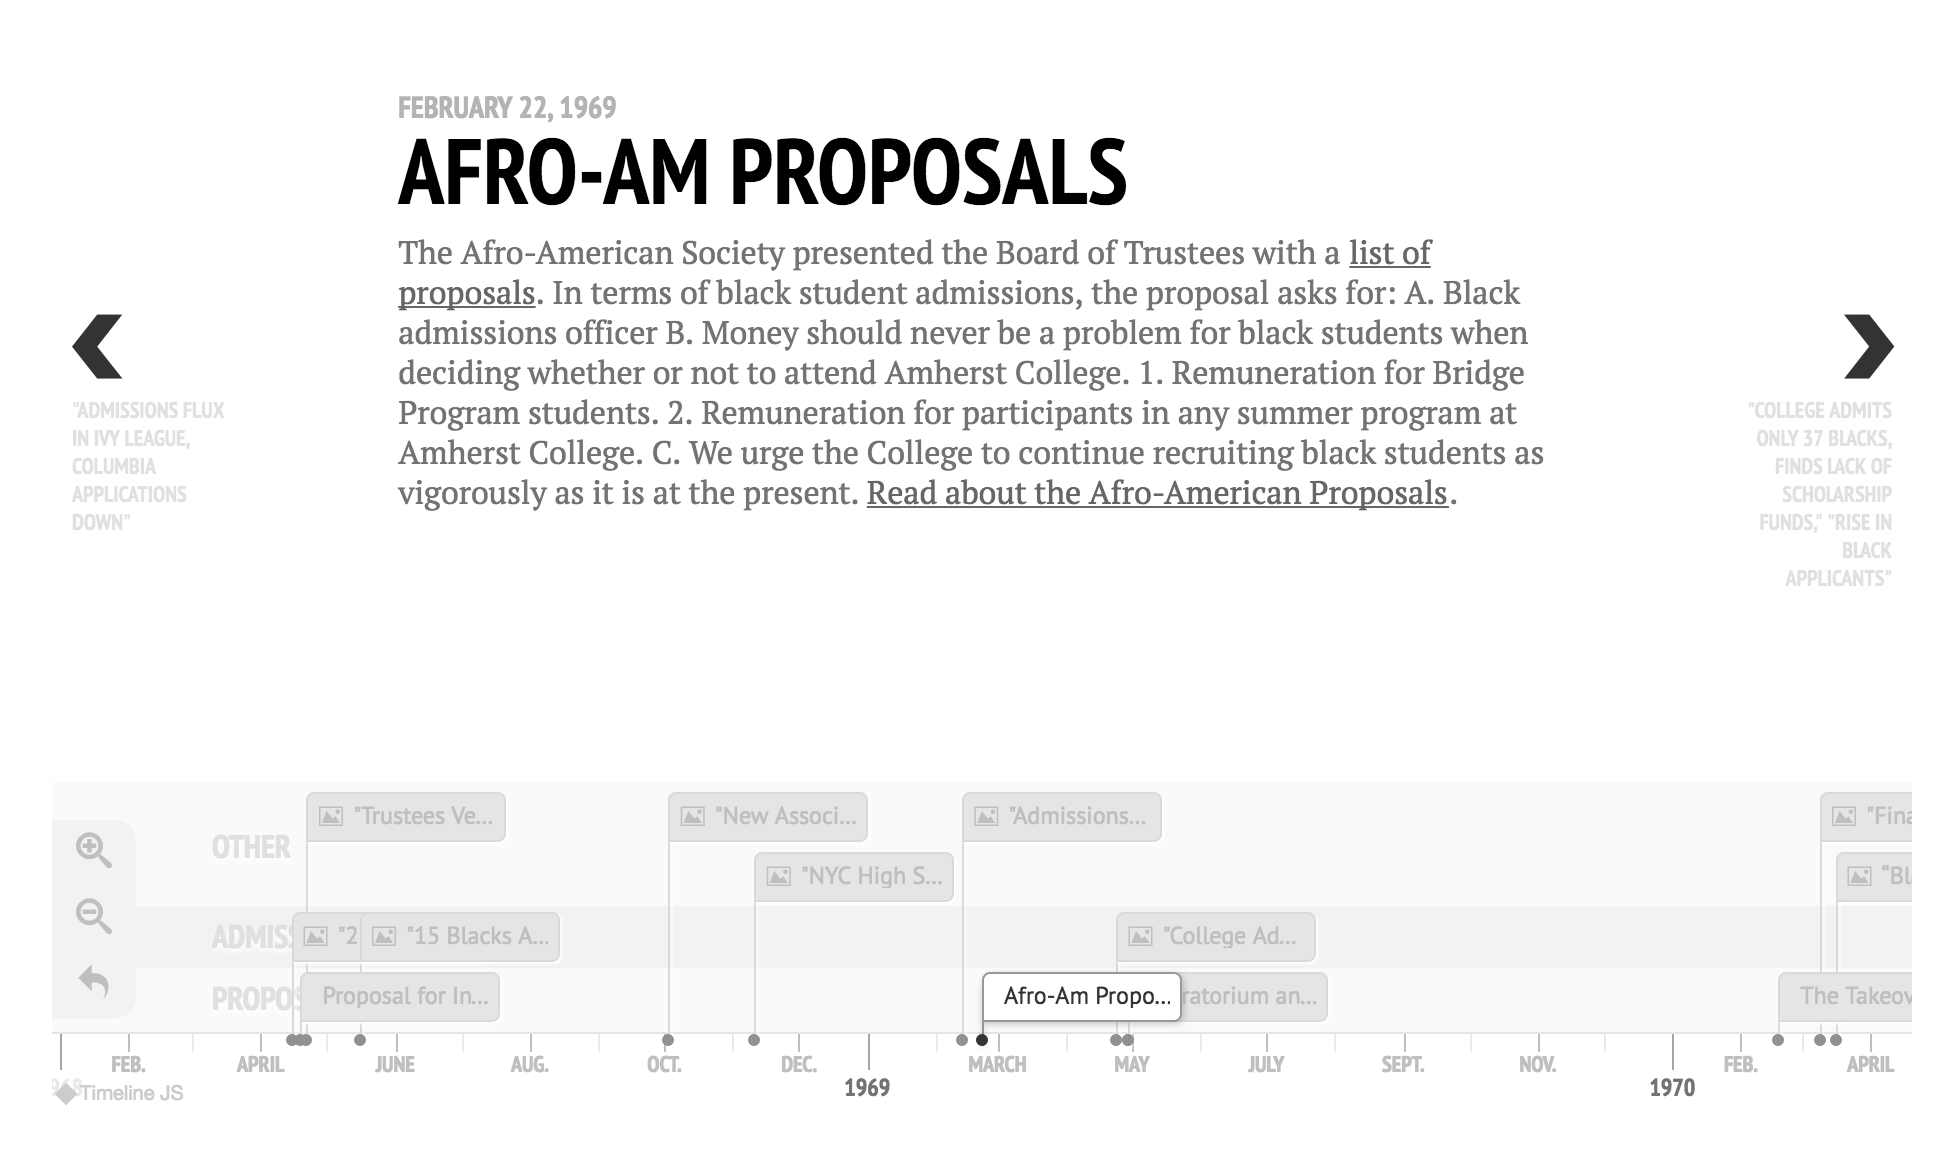 Timeline example 2